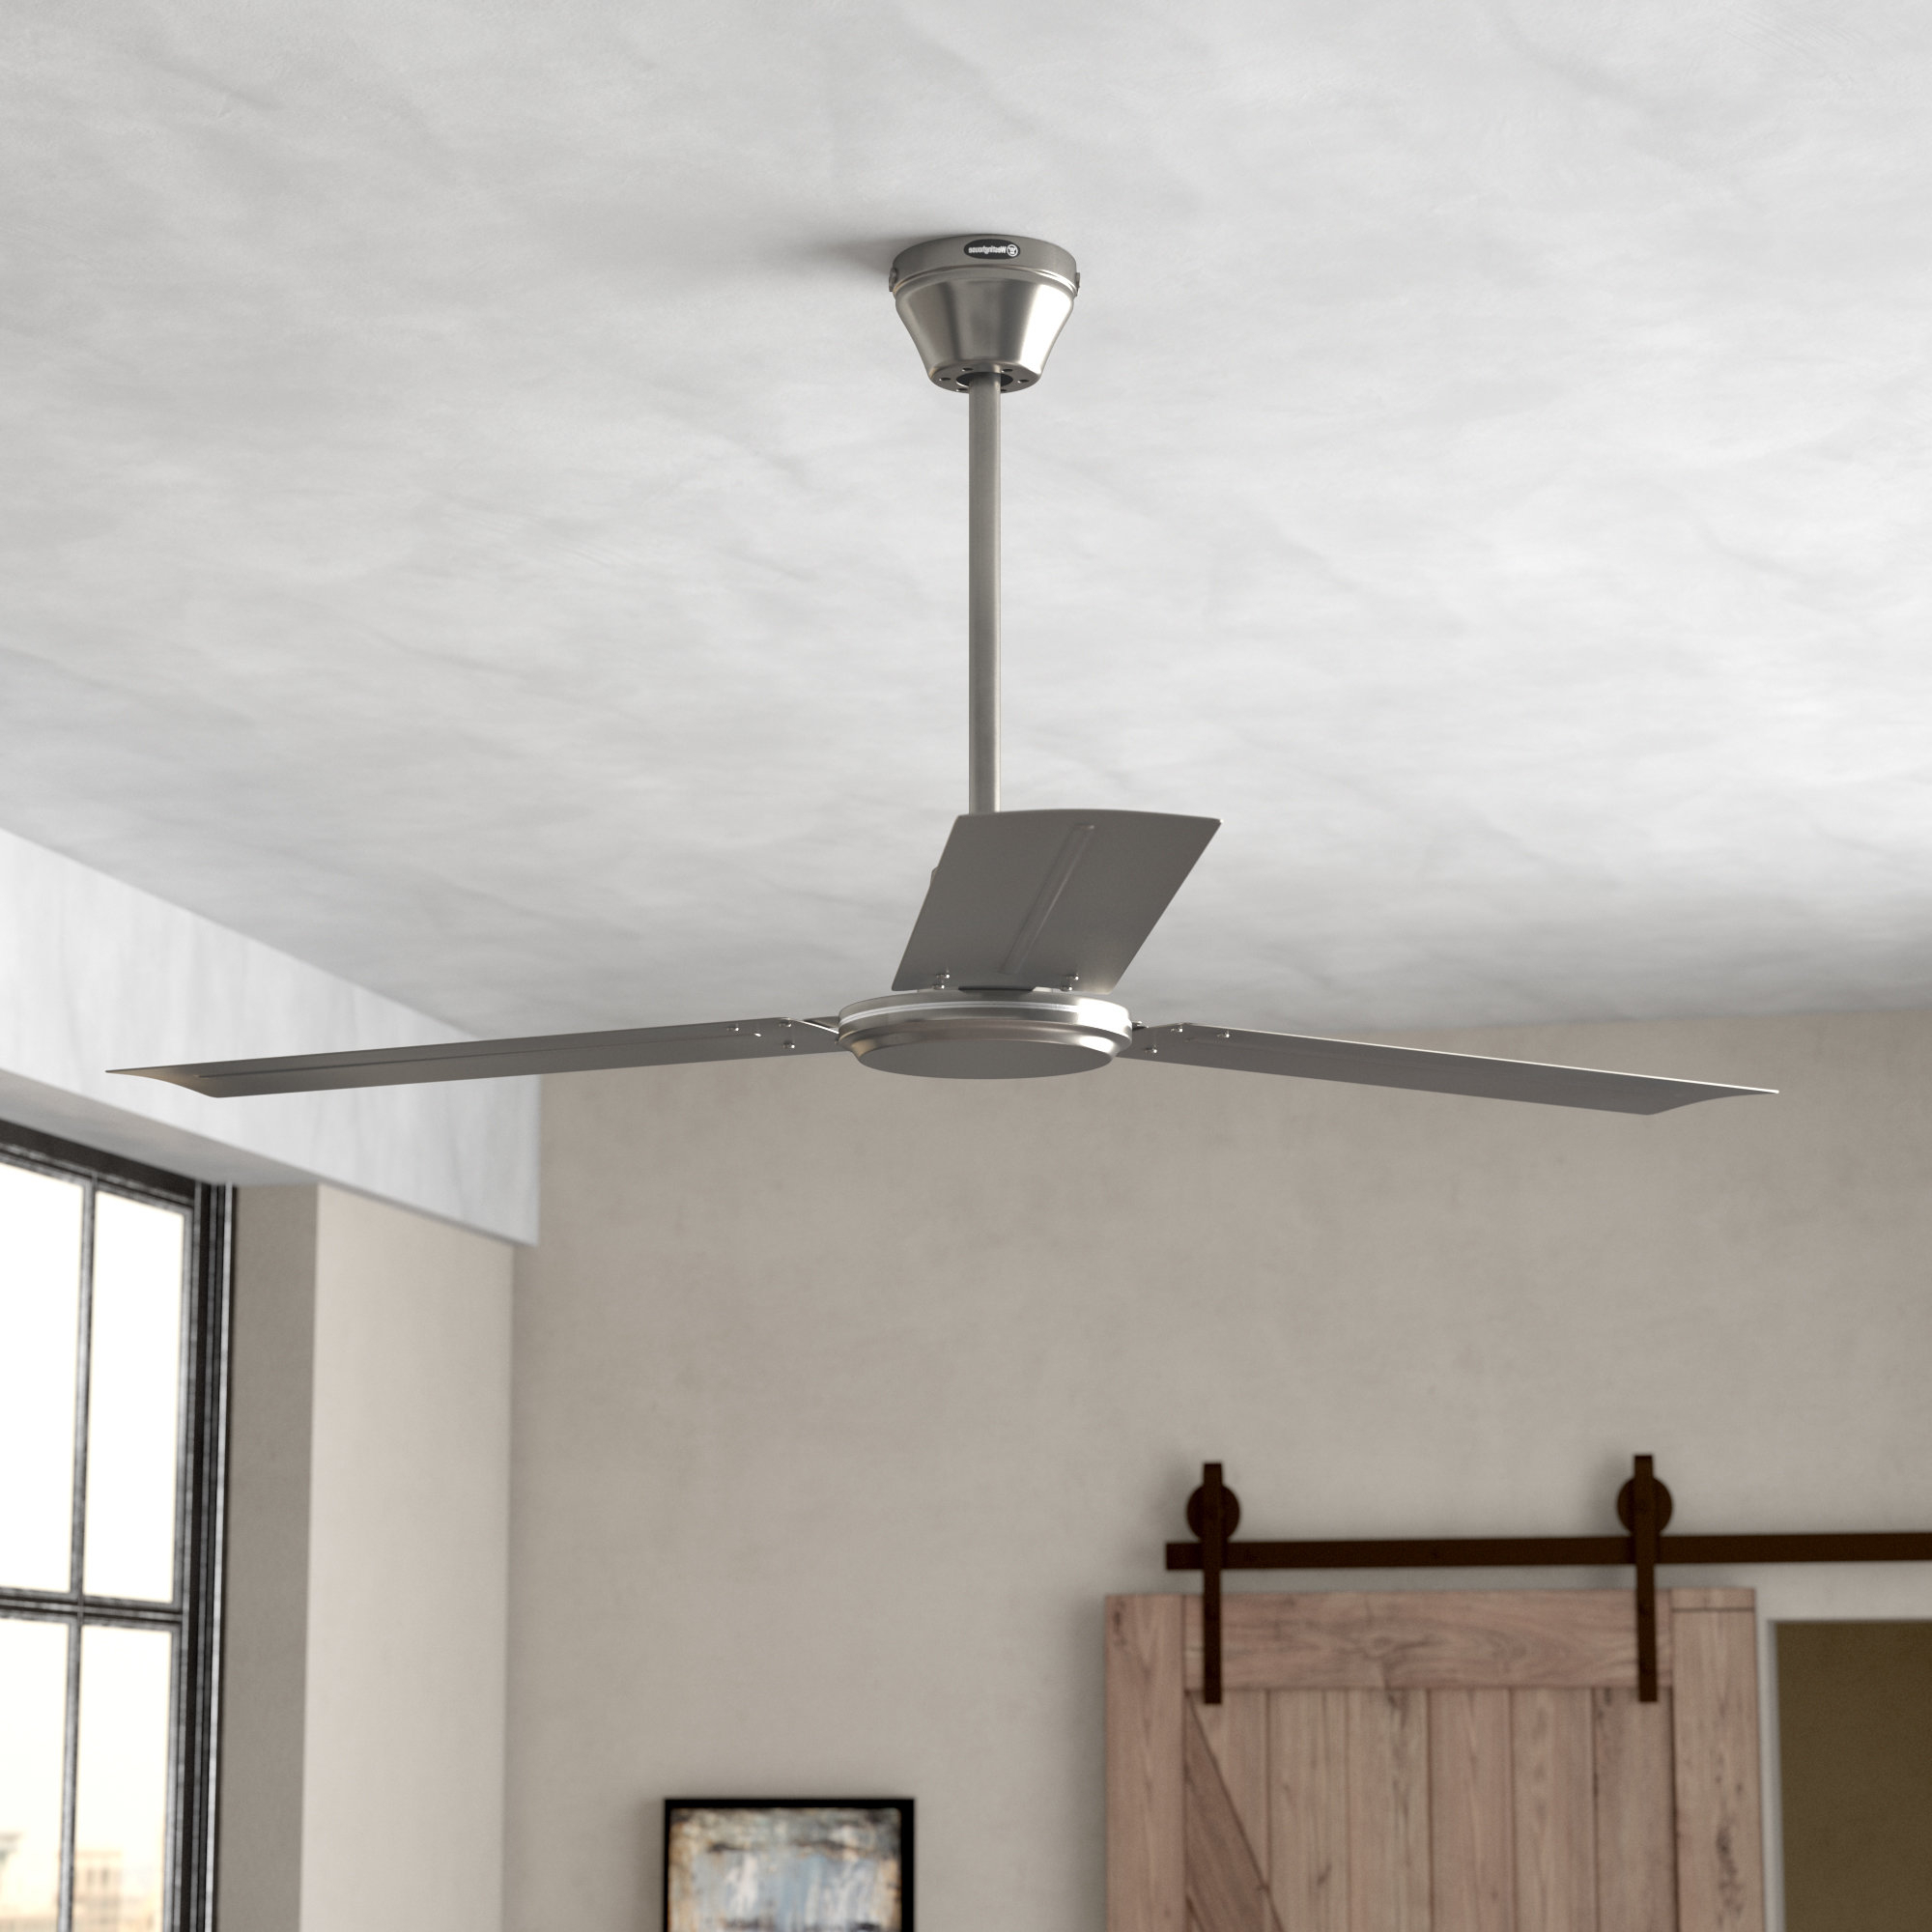 Well Liked Emil 3 Blade Ceiling Fans Within 56 Emil 3 Blade Industrial Ceiling Fanoutdoor Ceiling Fans (View 19 of 20)